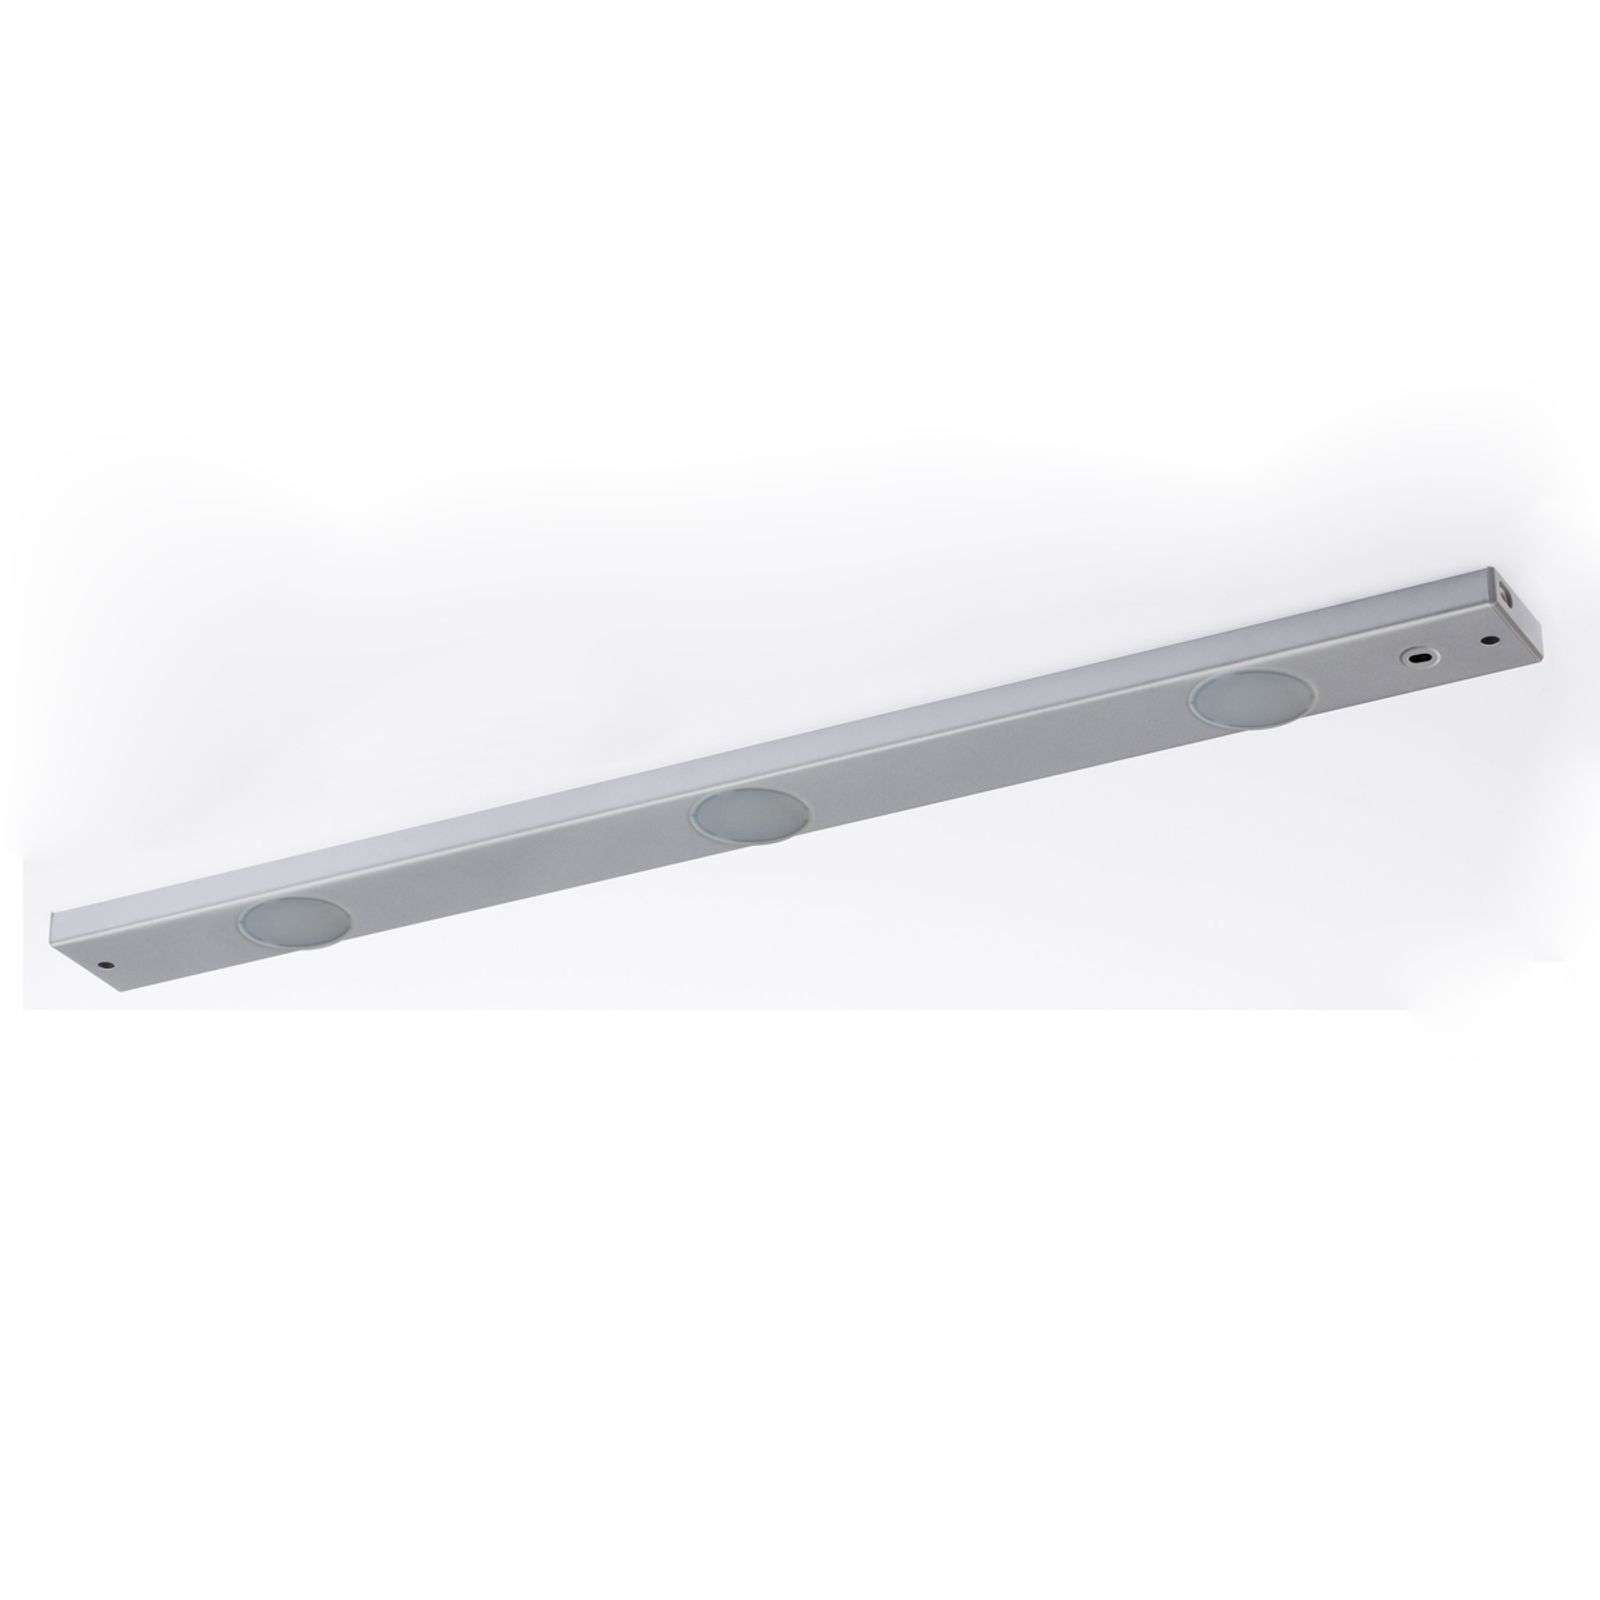 Cabinet Light - lampada LED sottopensile 42,4 cm